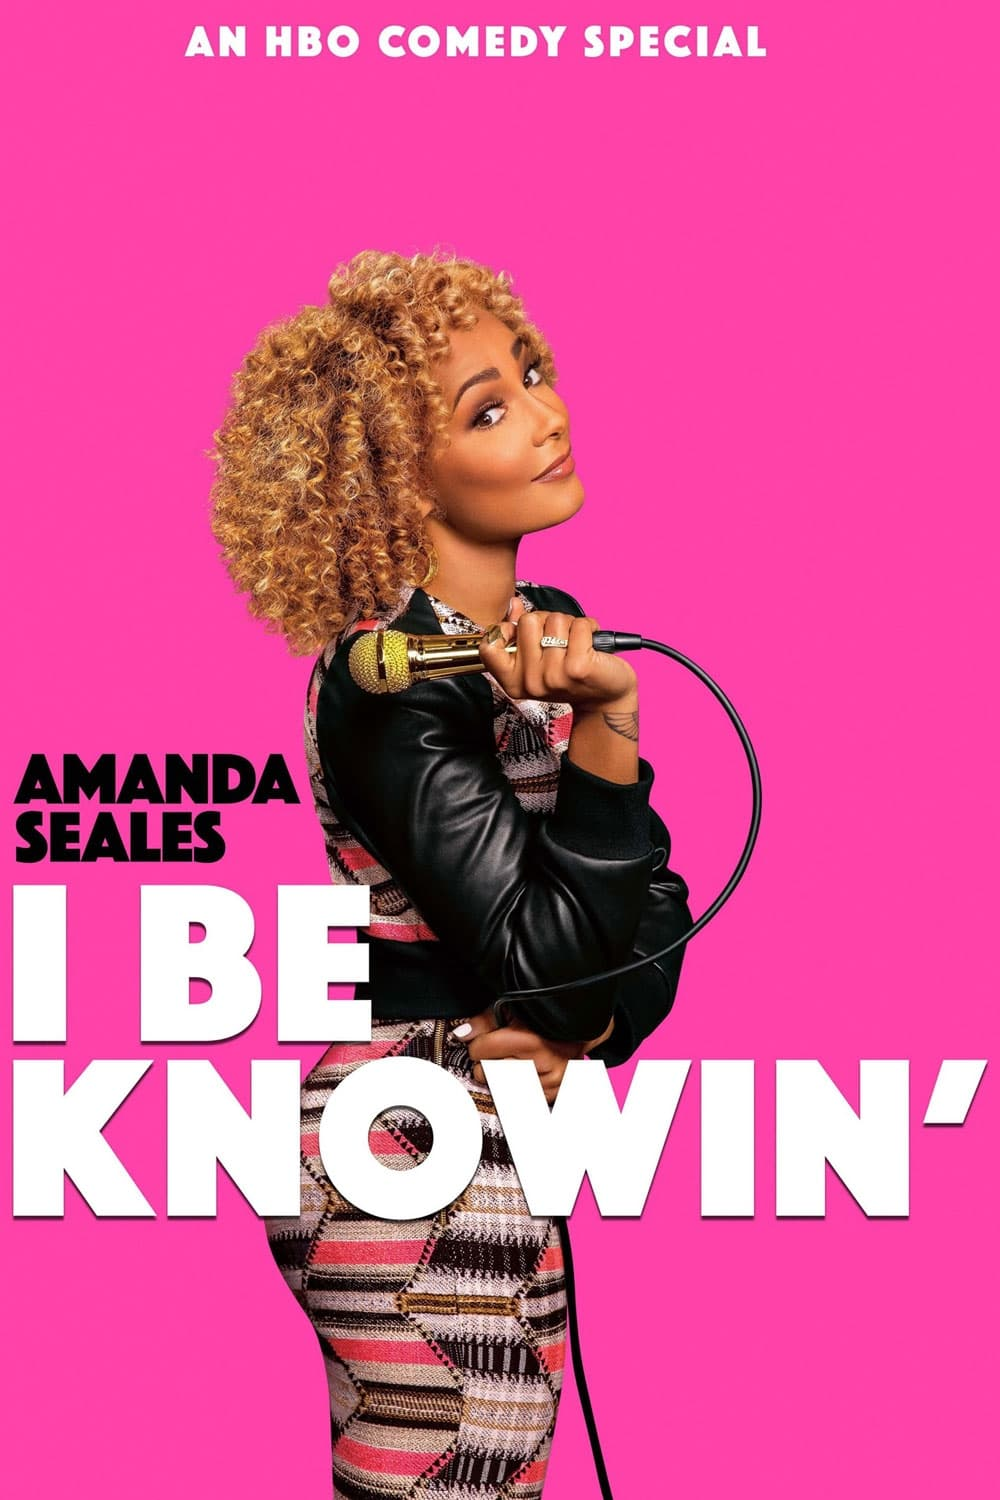 Amanda Seales: I Be Knowin' (2019)